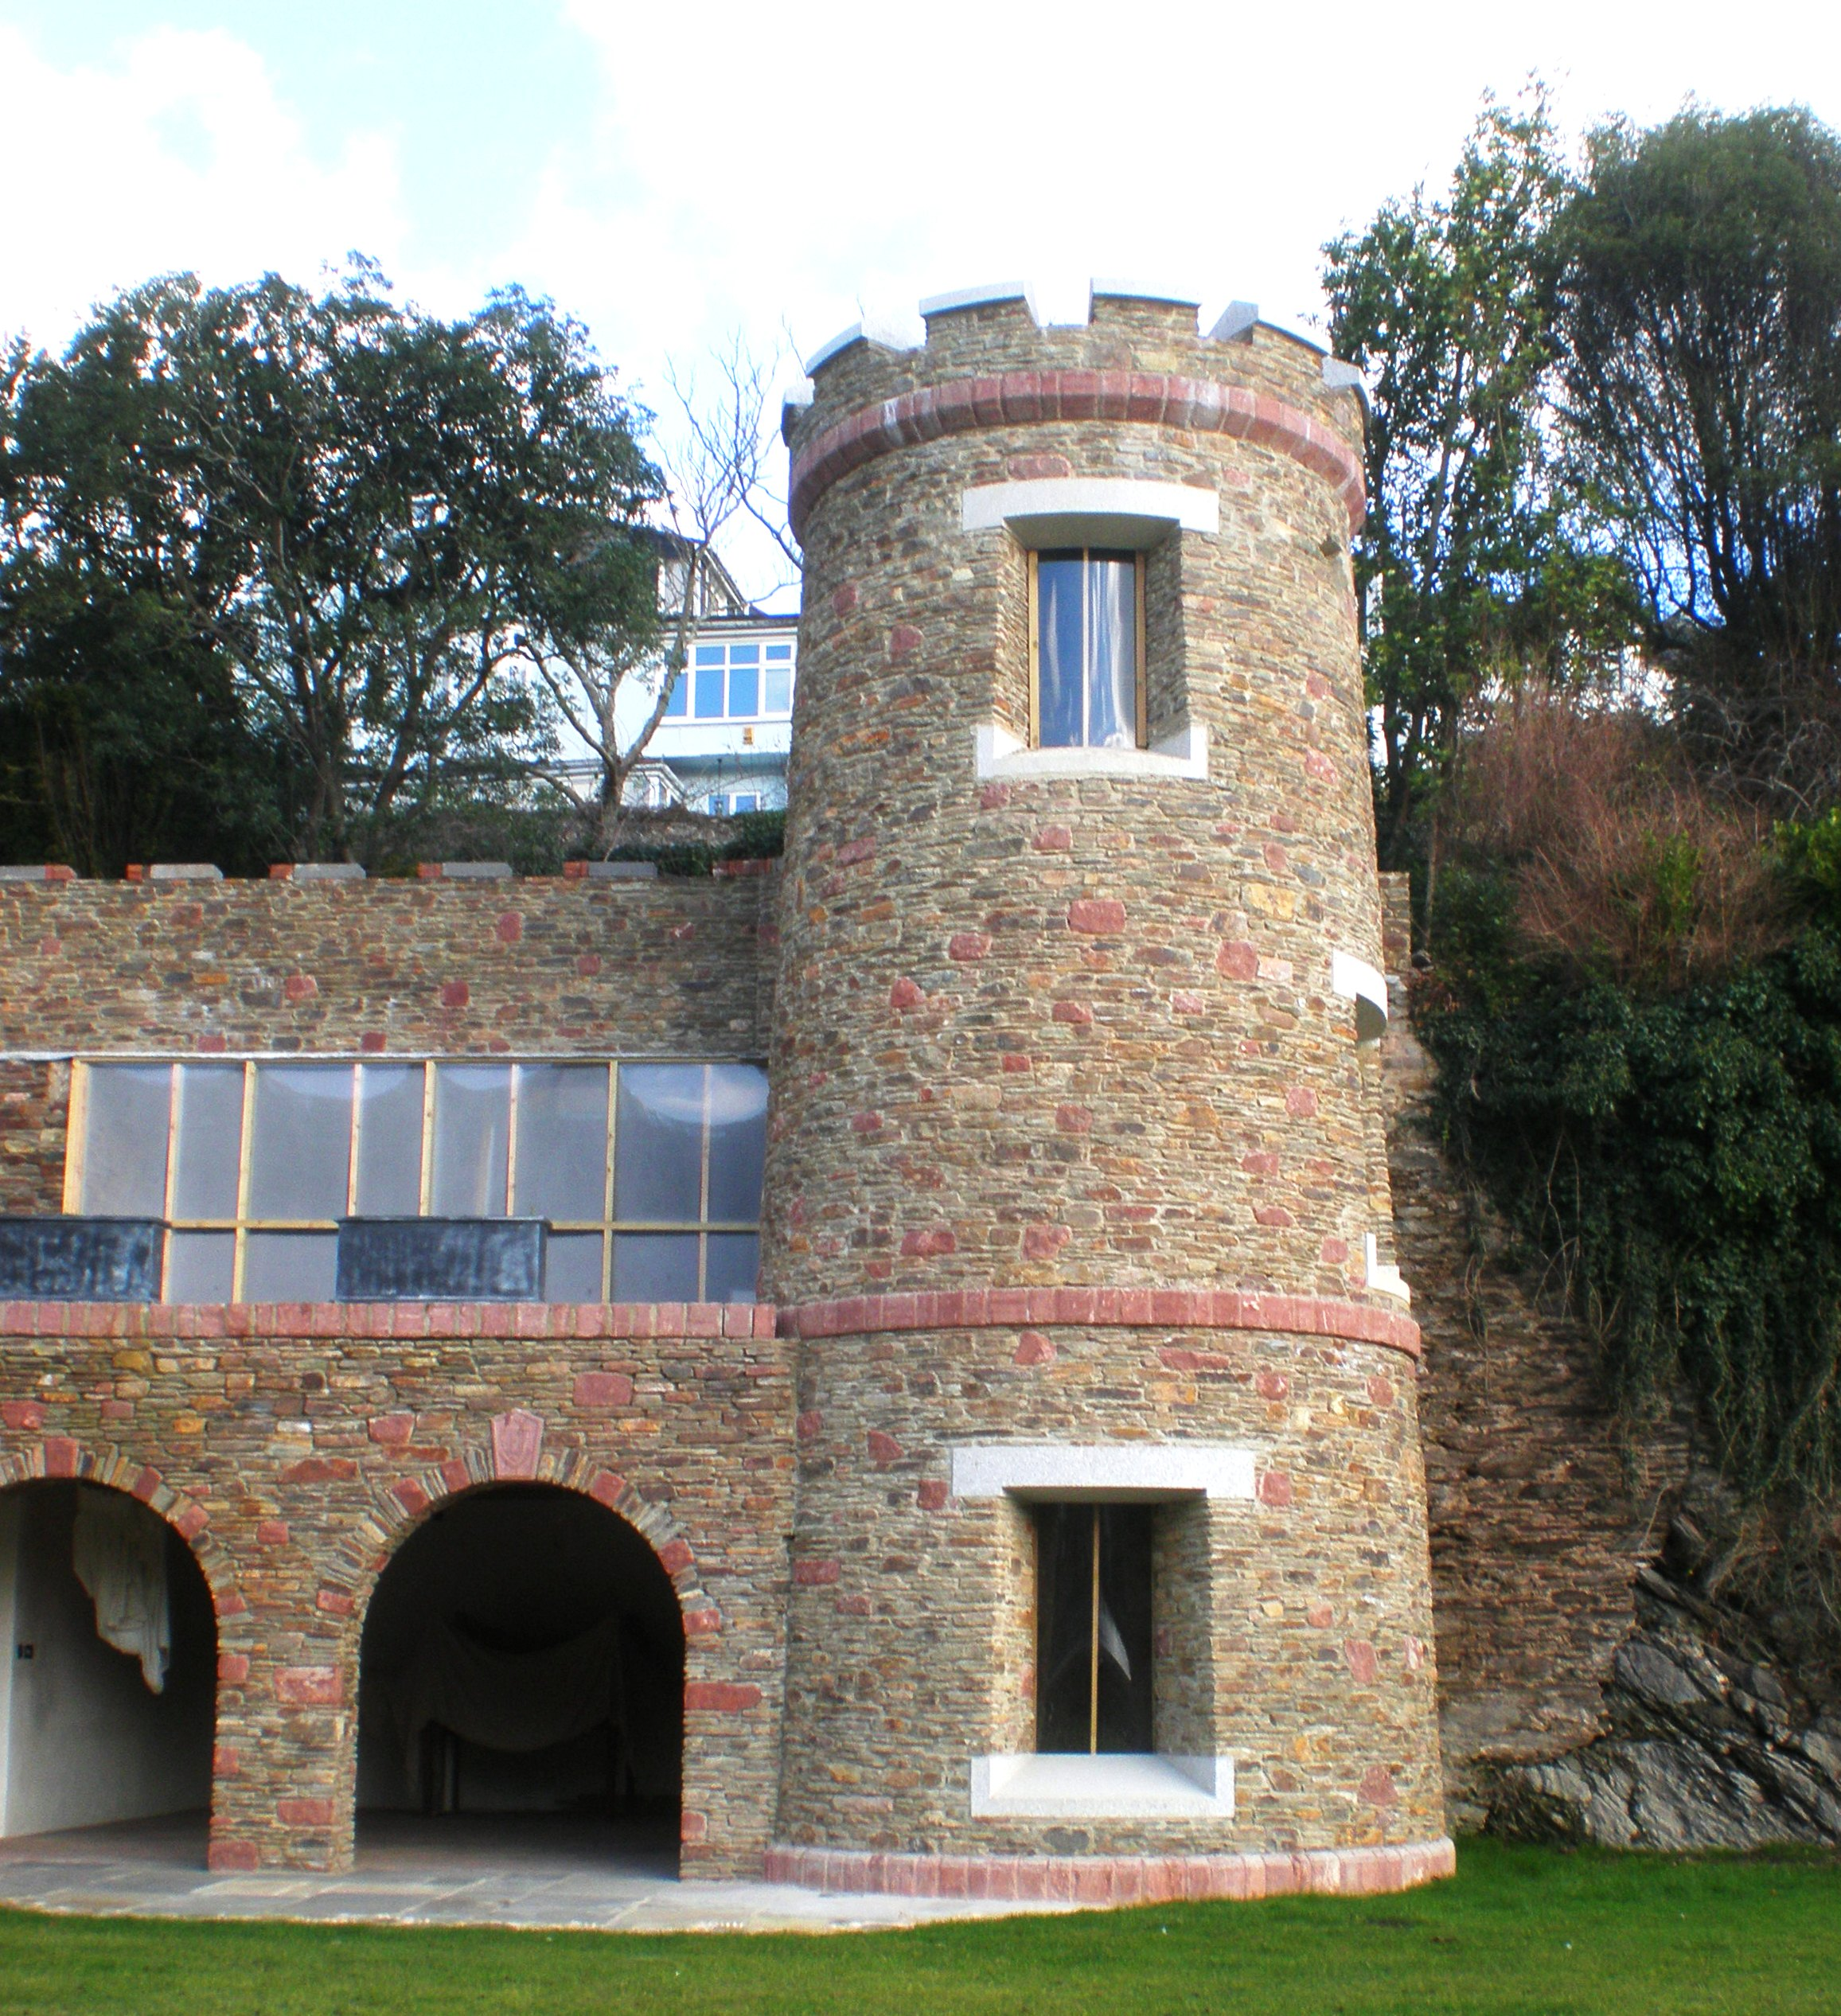 Extensions and alterations to a Grade II listed riverside property including traditional building features